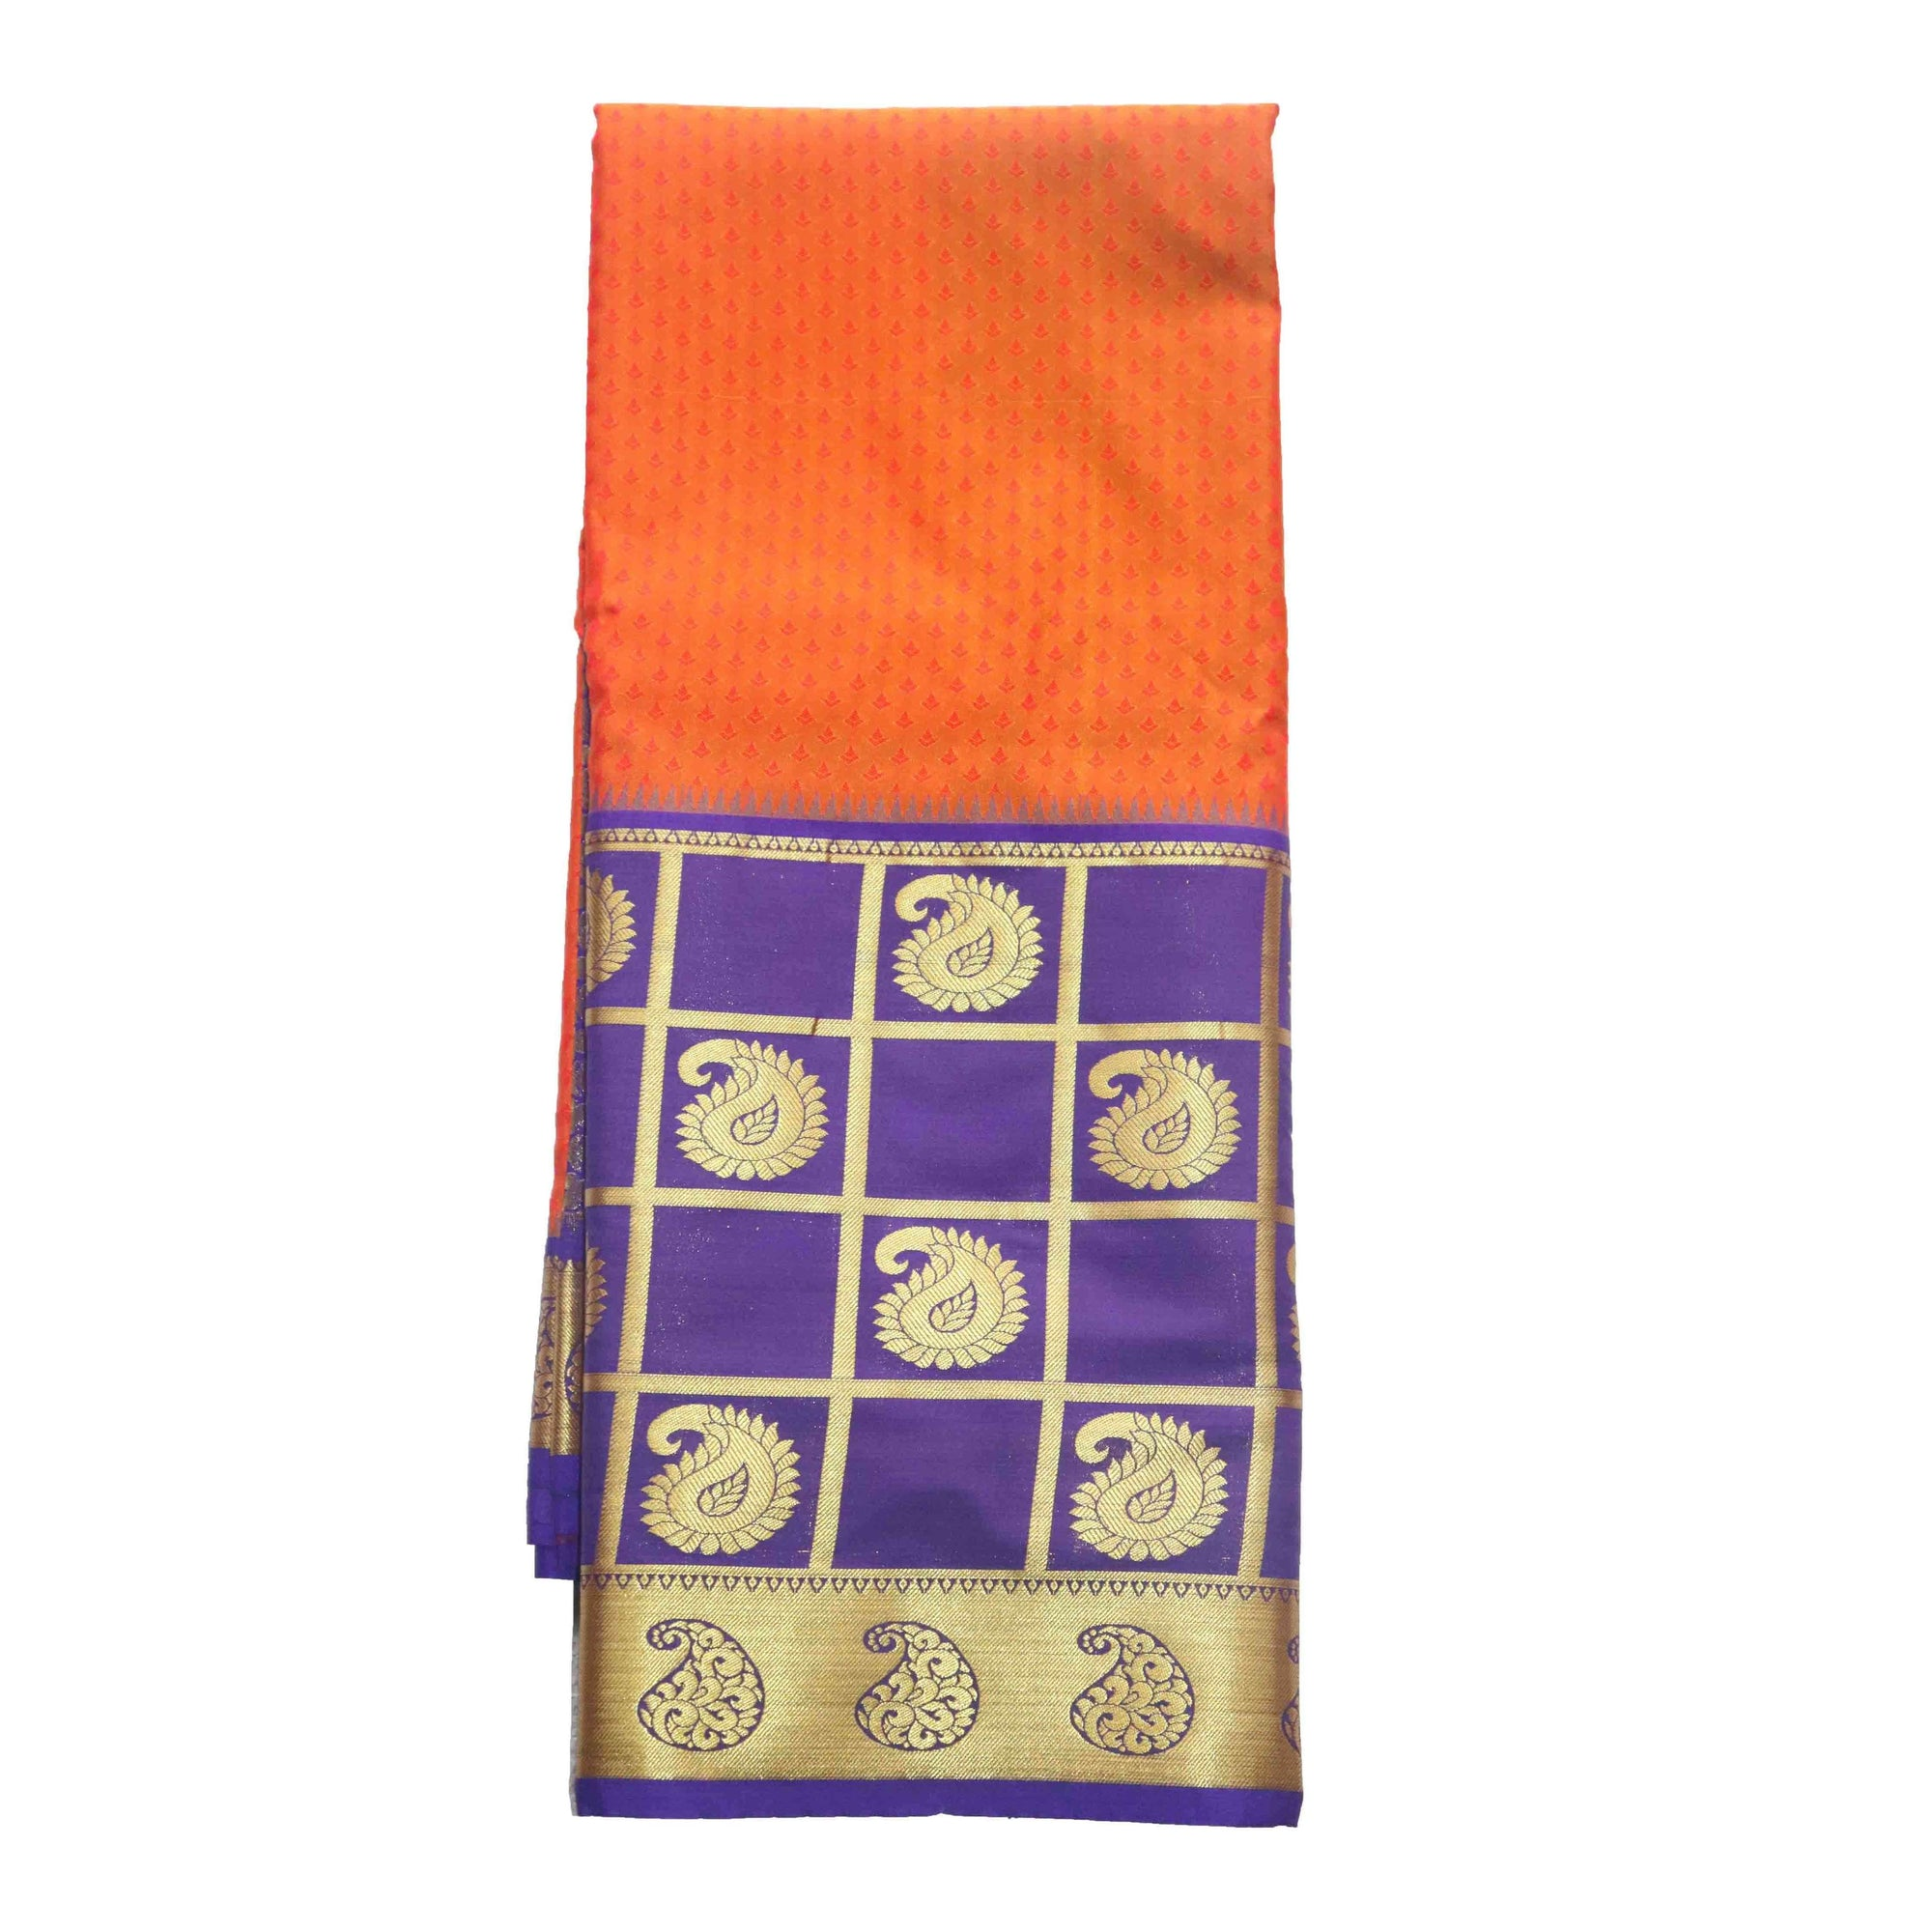 Arars Women's Kanchipuram Kanjivaram Pattu Style Art Embosed Plain Silk Saree With Blouse (470 ORANGE ROYAL )